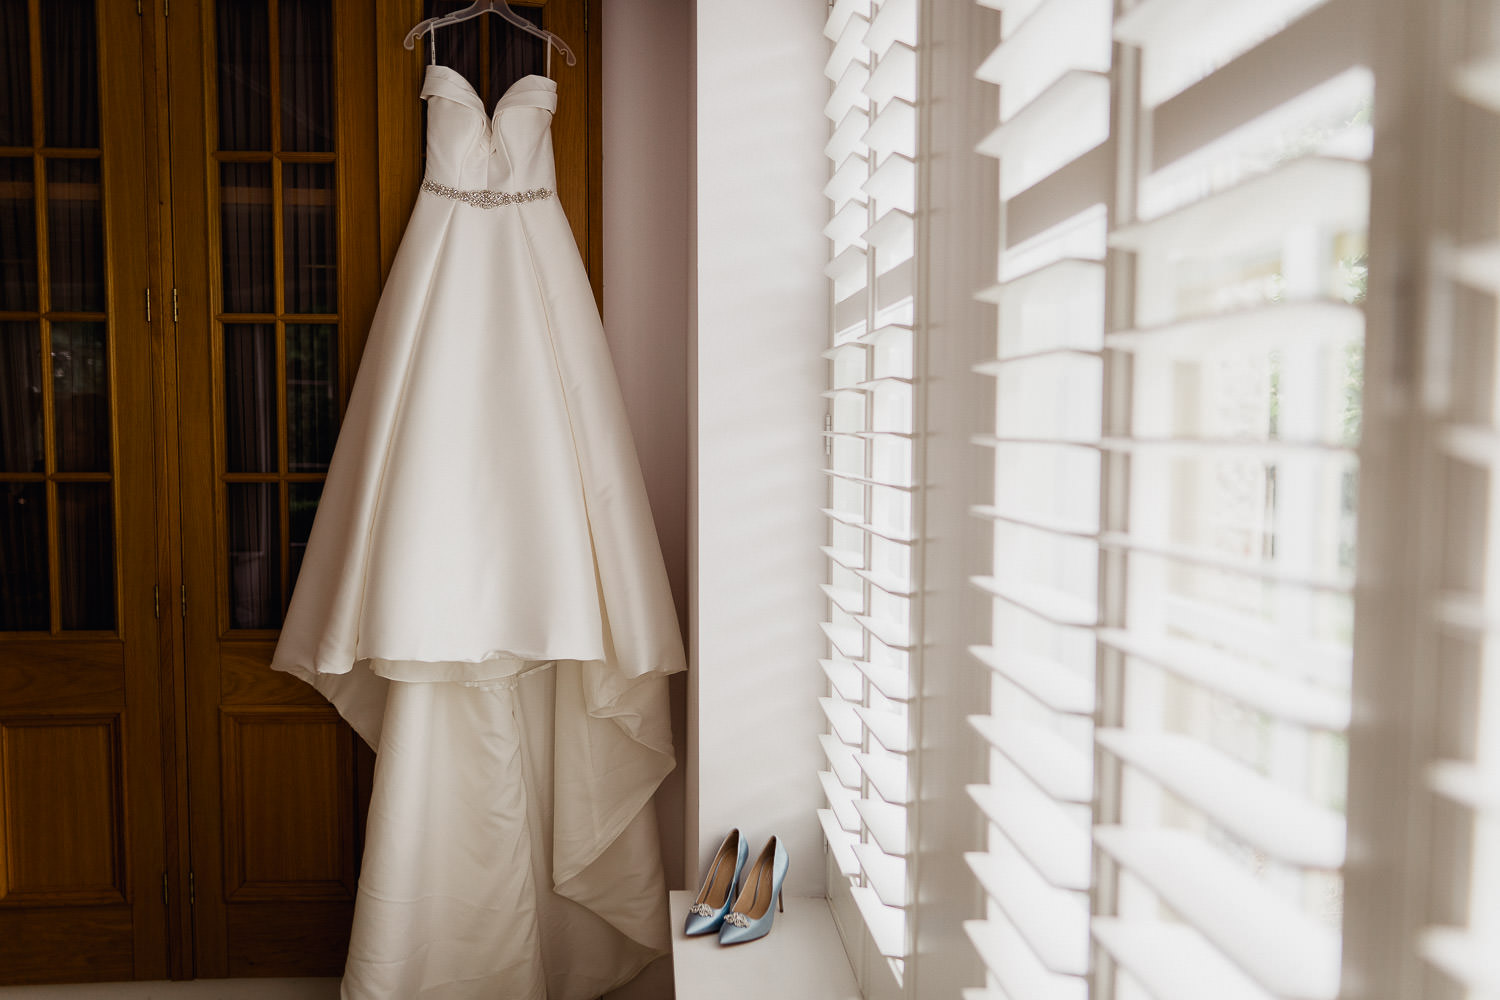 wedding dress and wedding shoes in window light